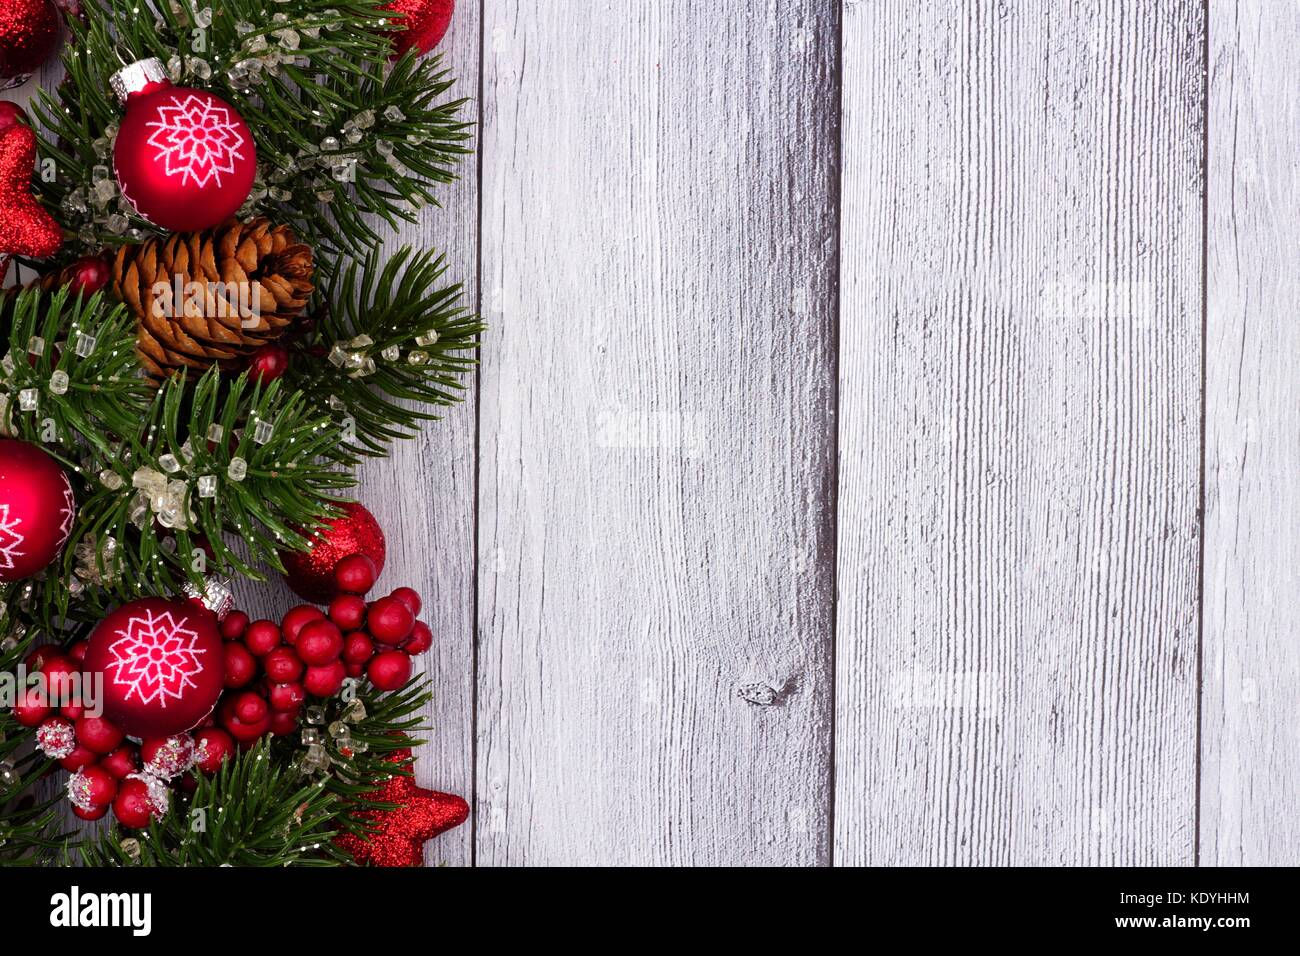 Red Christmas Ornaments And Branches Side Border On A Rustic White Wood Background